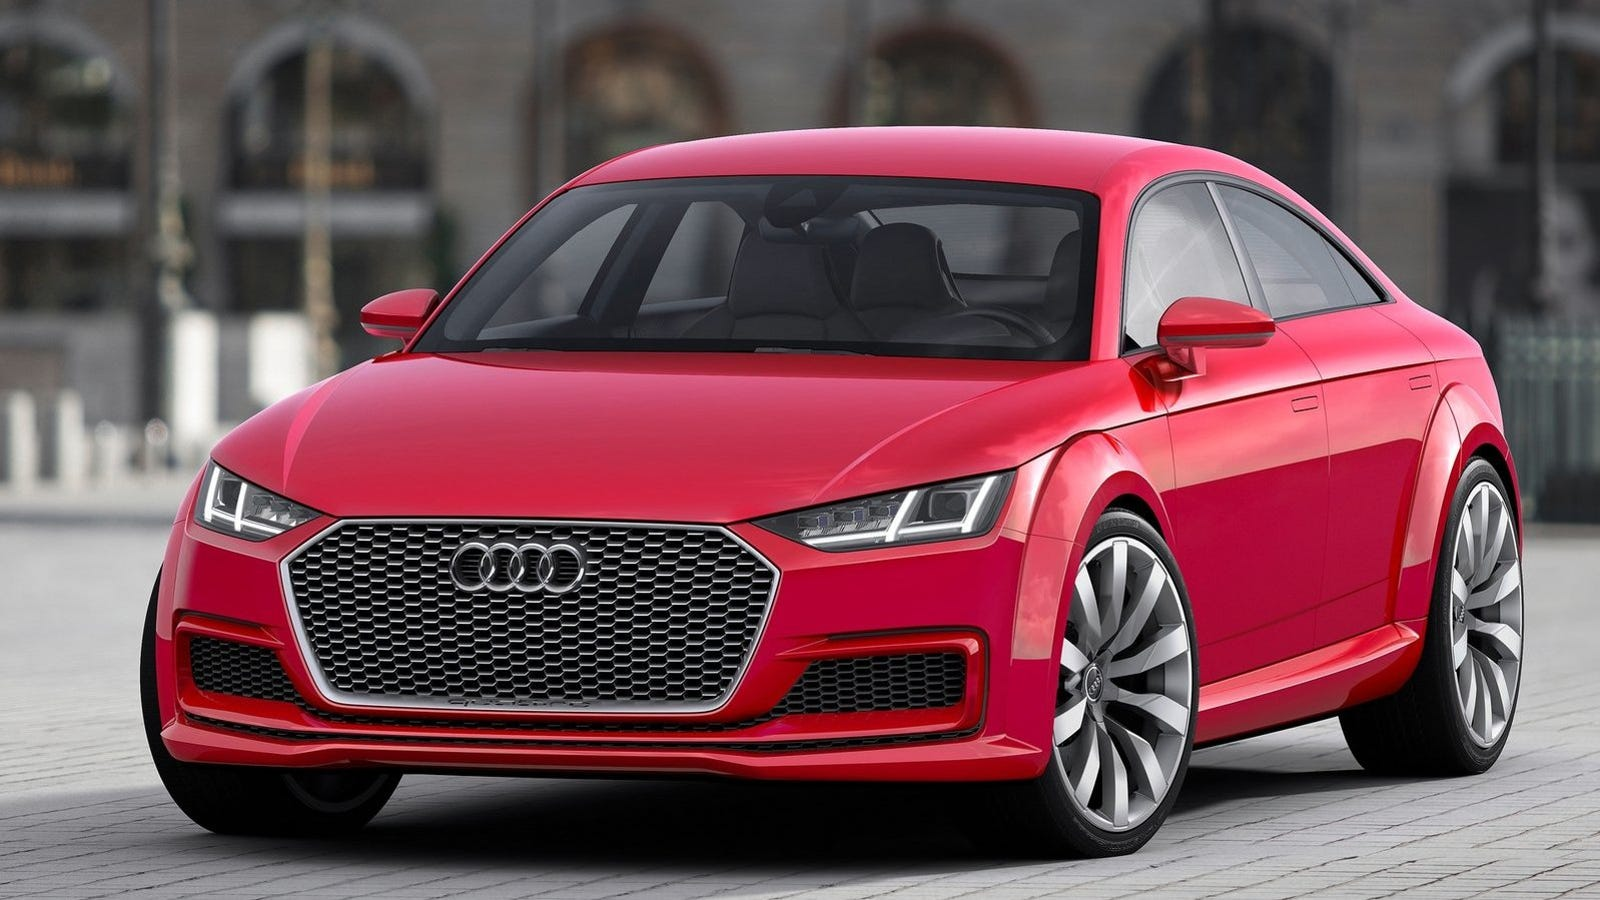 The Audi TT May Have to Become a Four-Door to Survive: Report